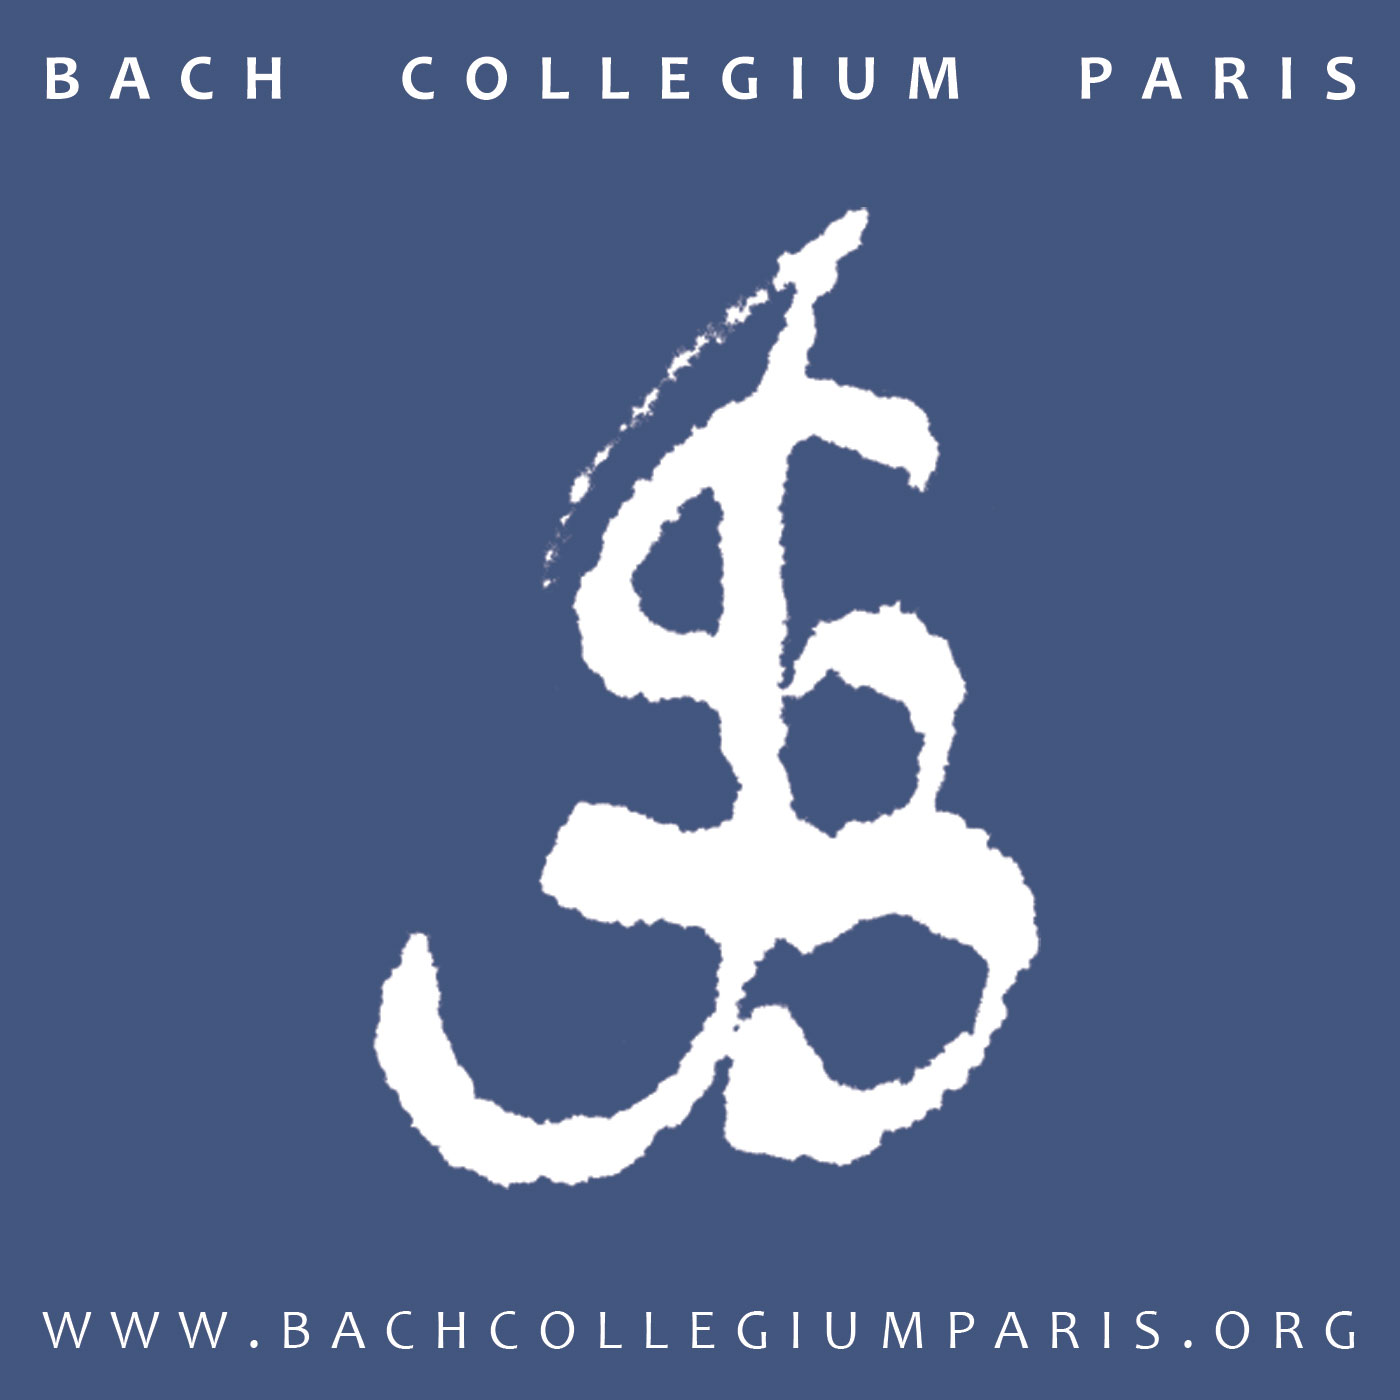 Bach Collegium Paris (en)